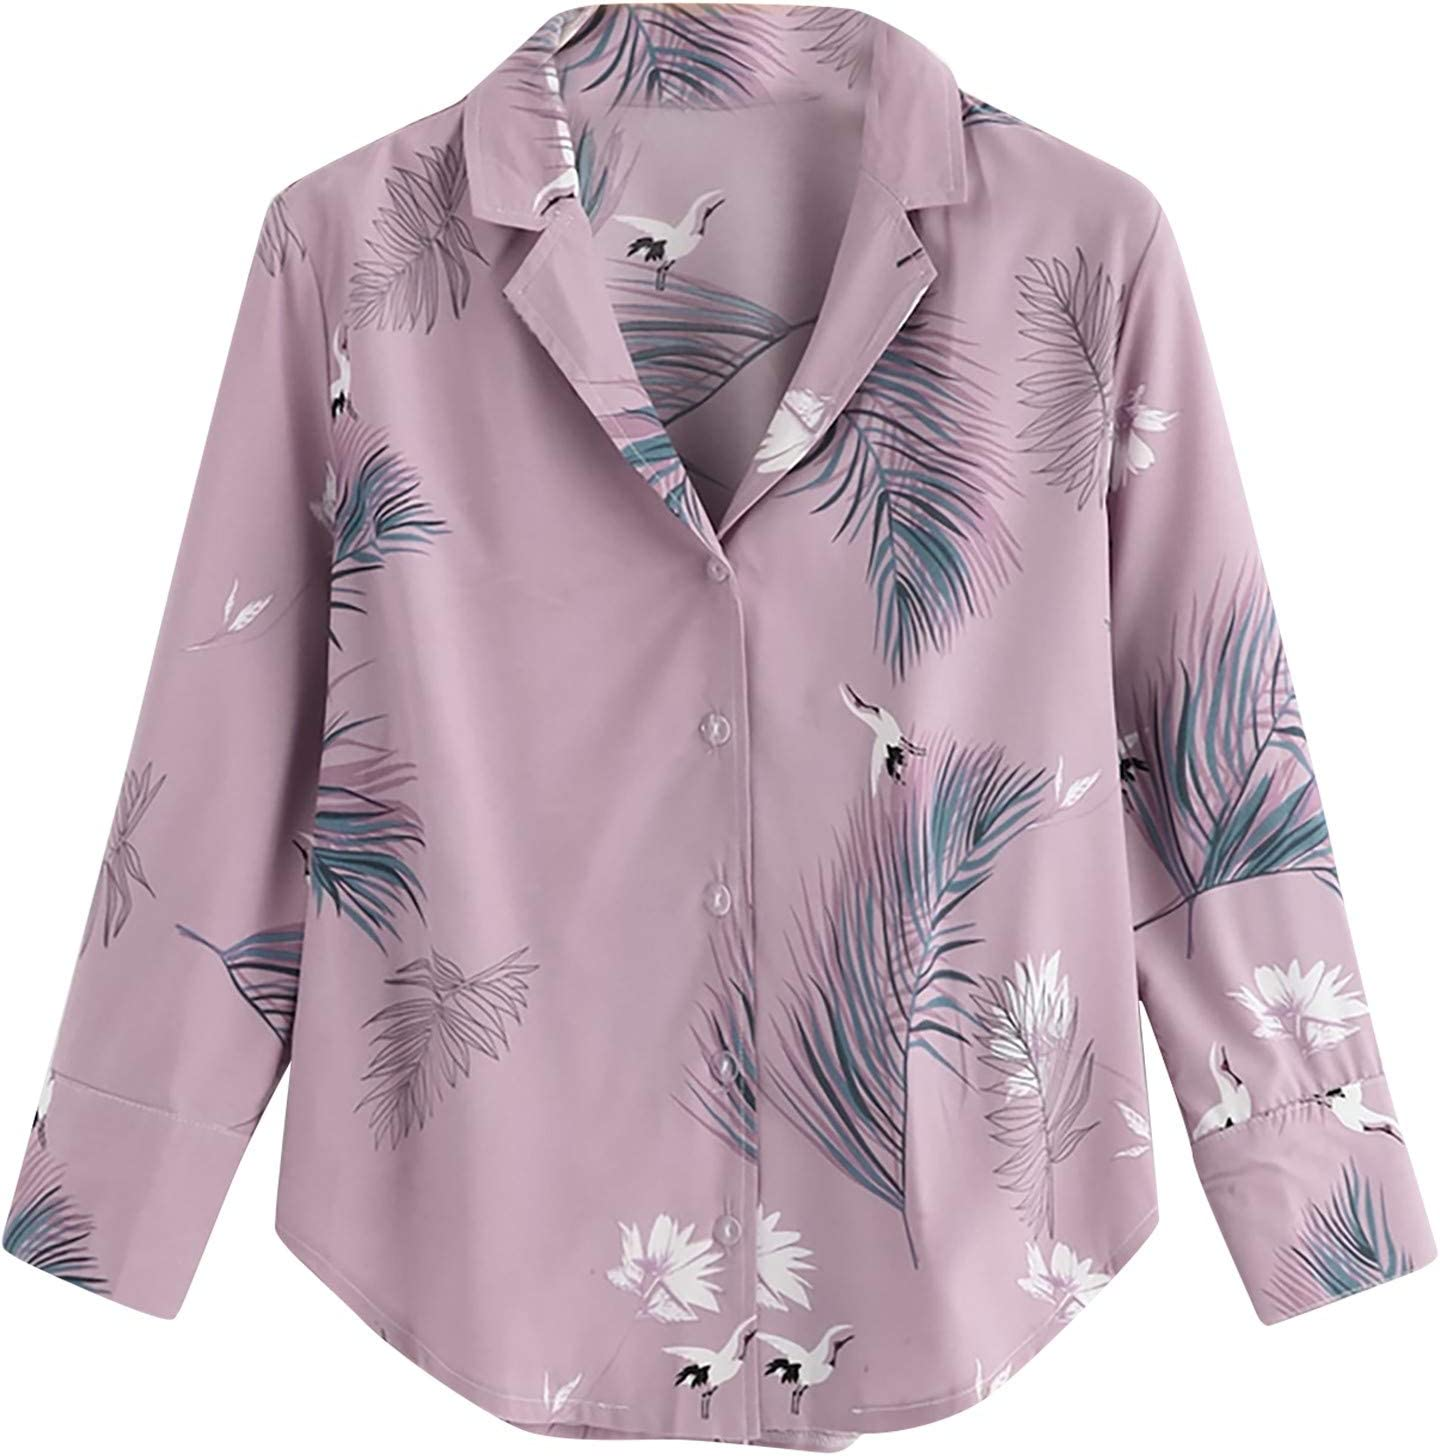 Floral Blouses for Women Long Business Ele Max 43% OFF Sleeve Kansas City Mall Vintage Casual